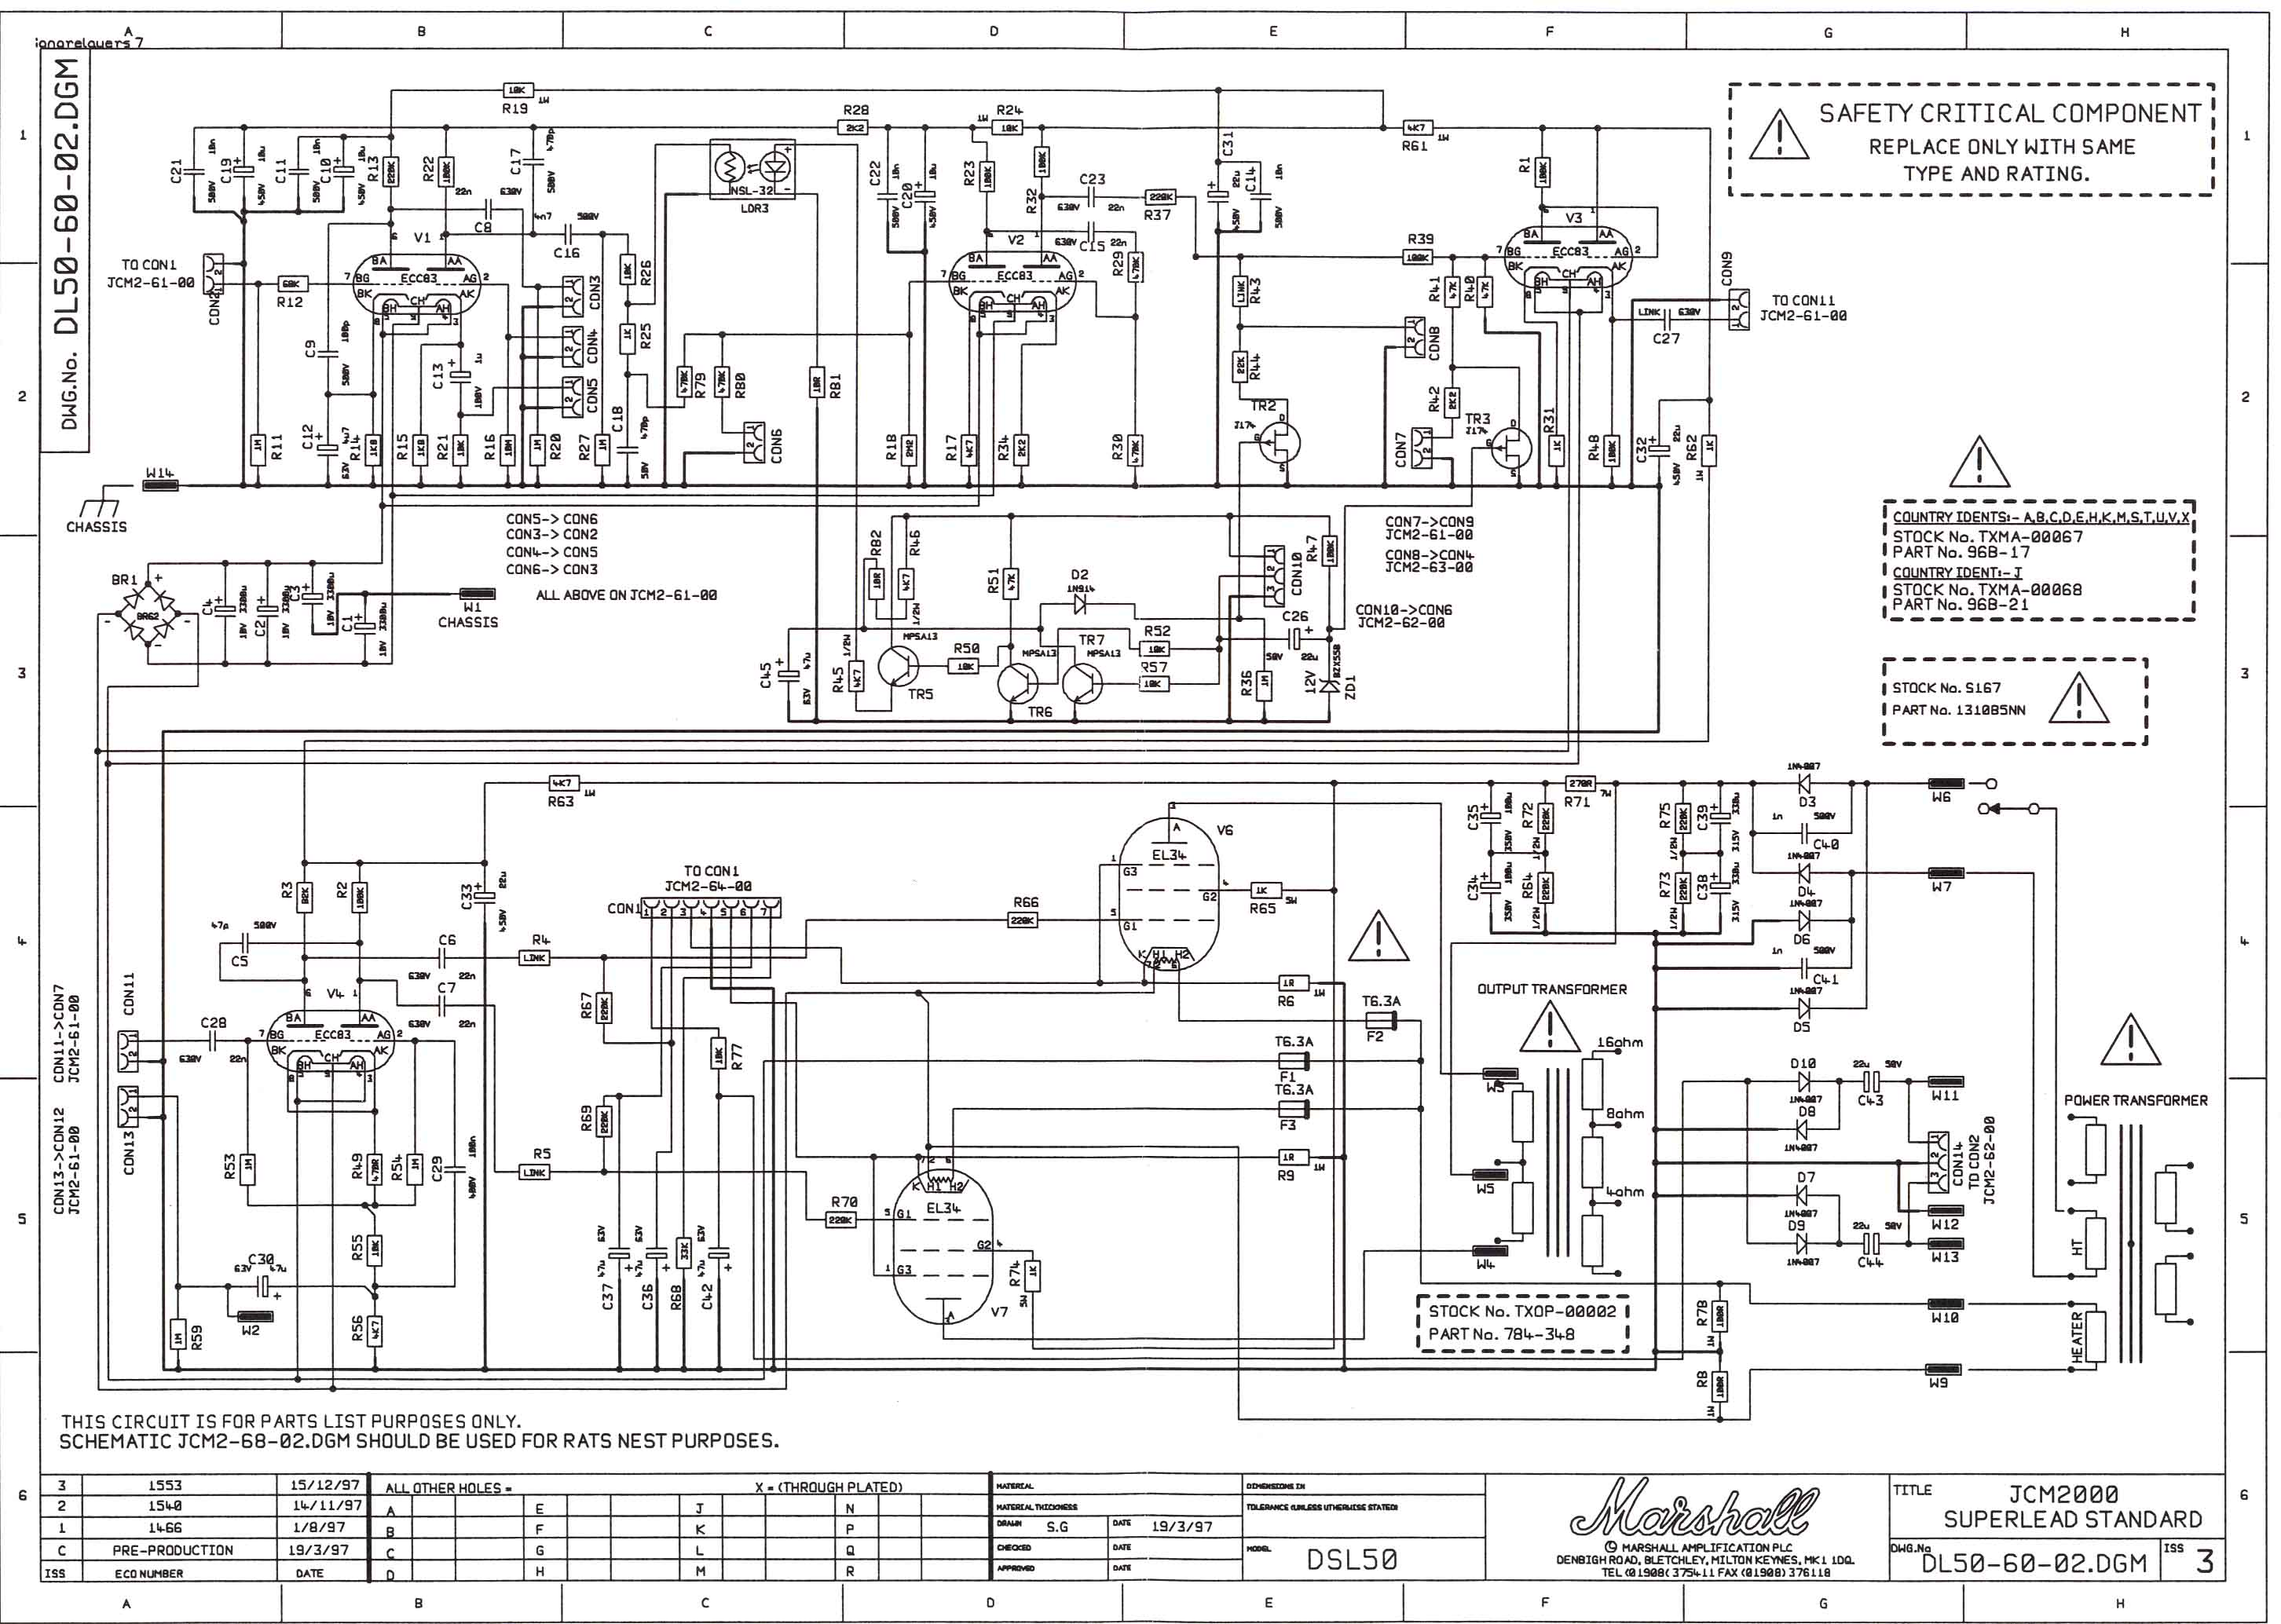 Unusual moritz trailer wiring diagram pictures inspiration magnificent moritz trailer wiring diagram ideas electrical and cheapraybanclubmaster Image collections